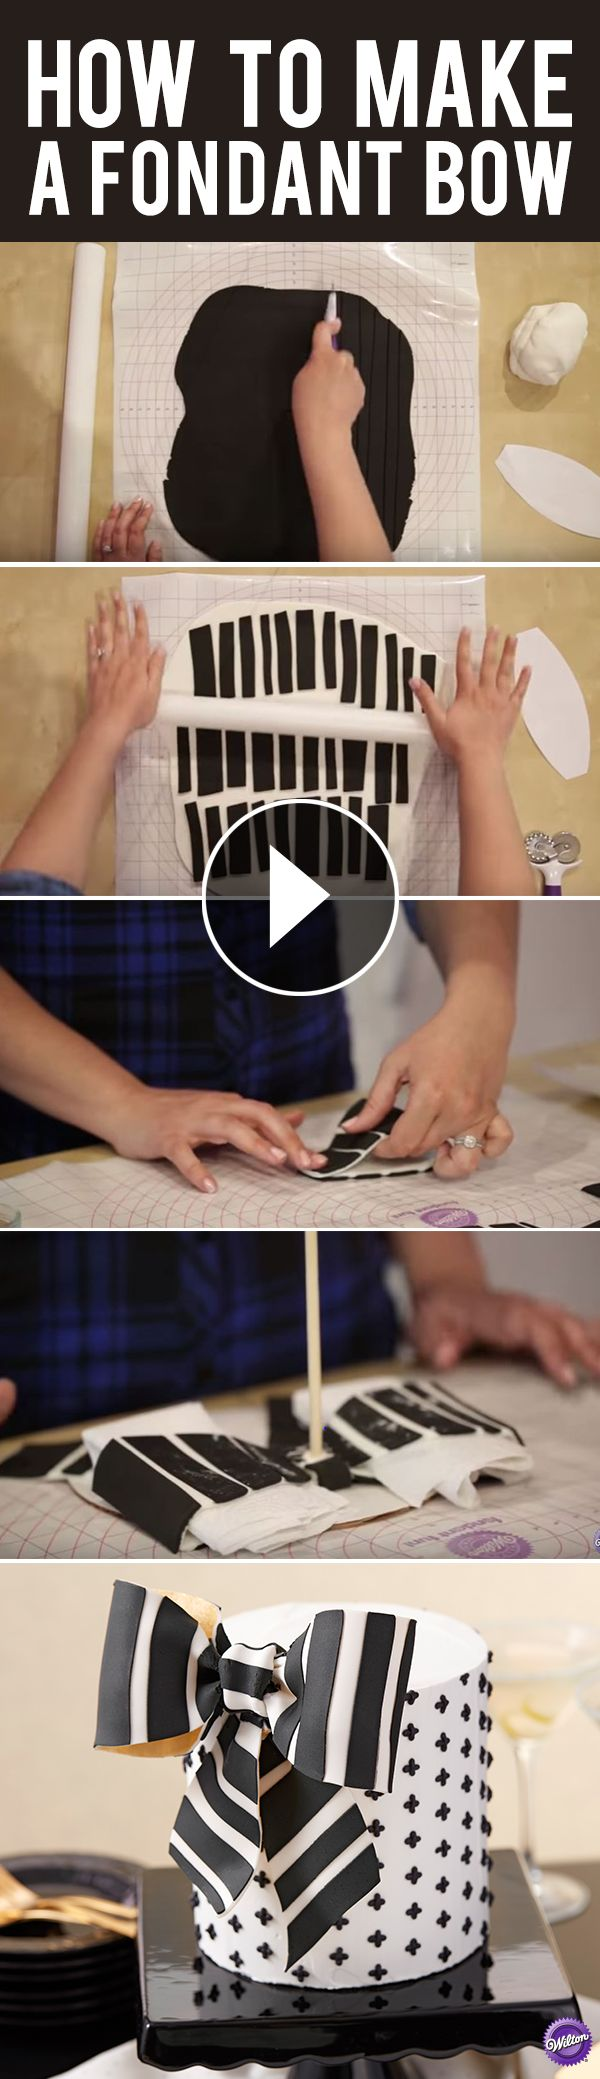 How to make fondant feathers youtube - How To Make A Fondant Bow Learn How To Make A Classic Black And White